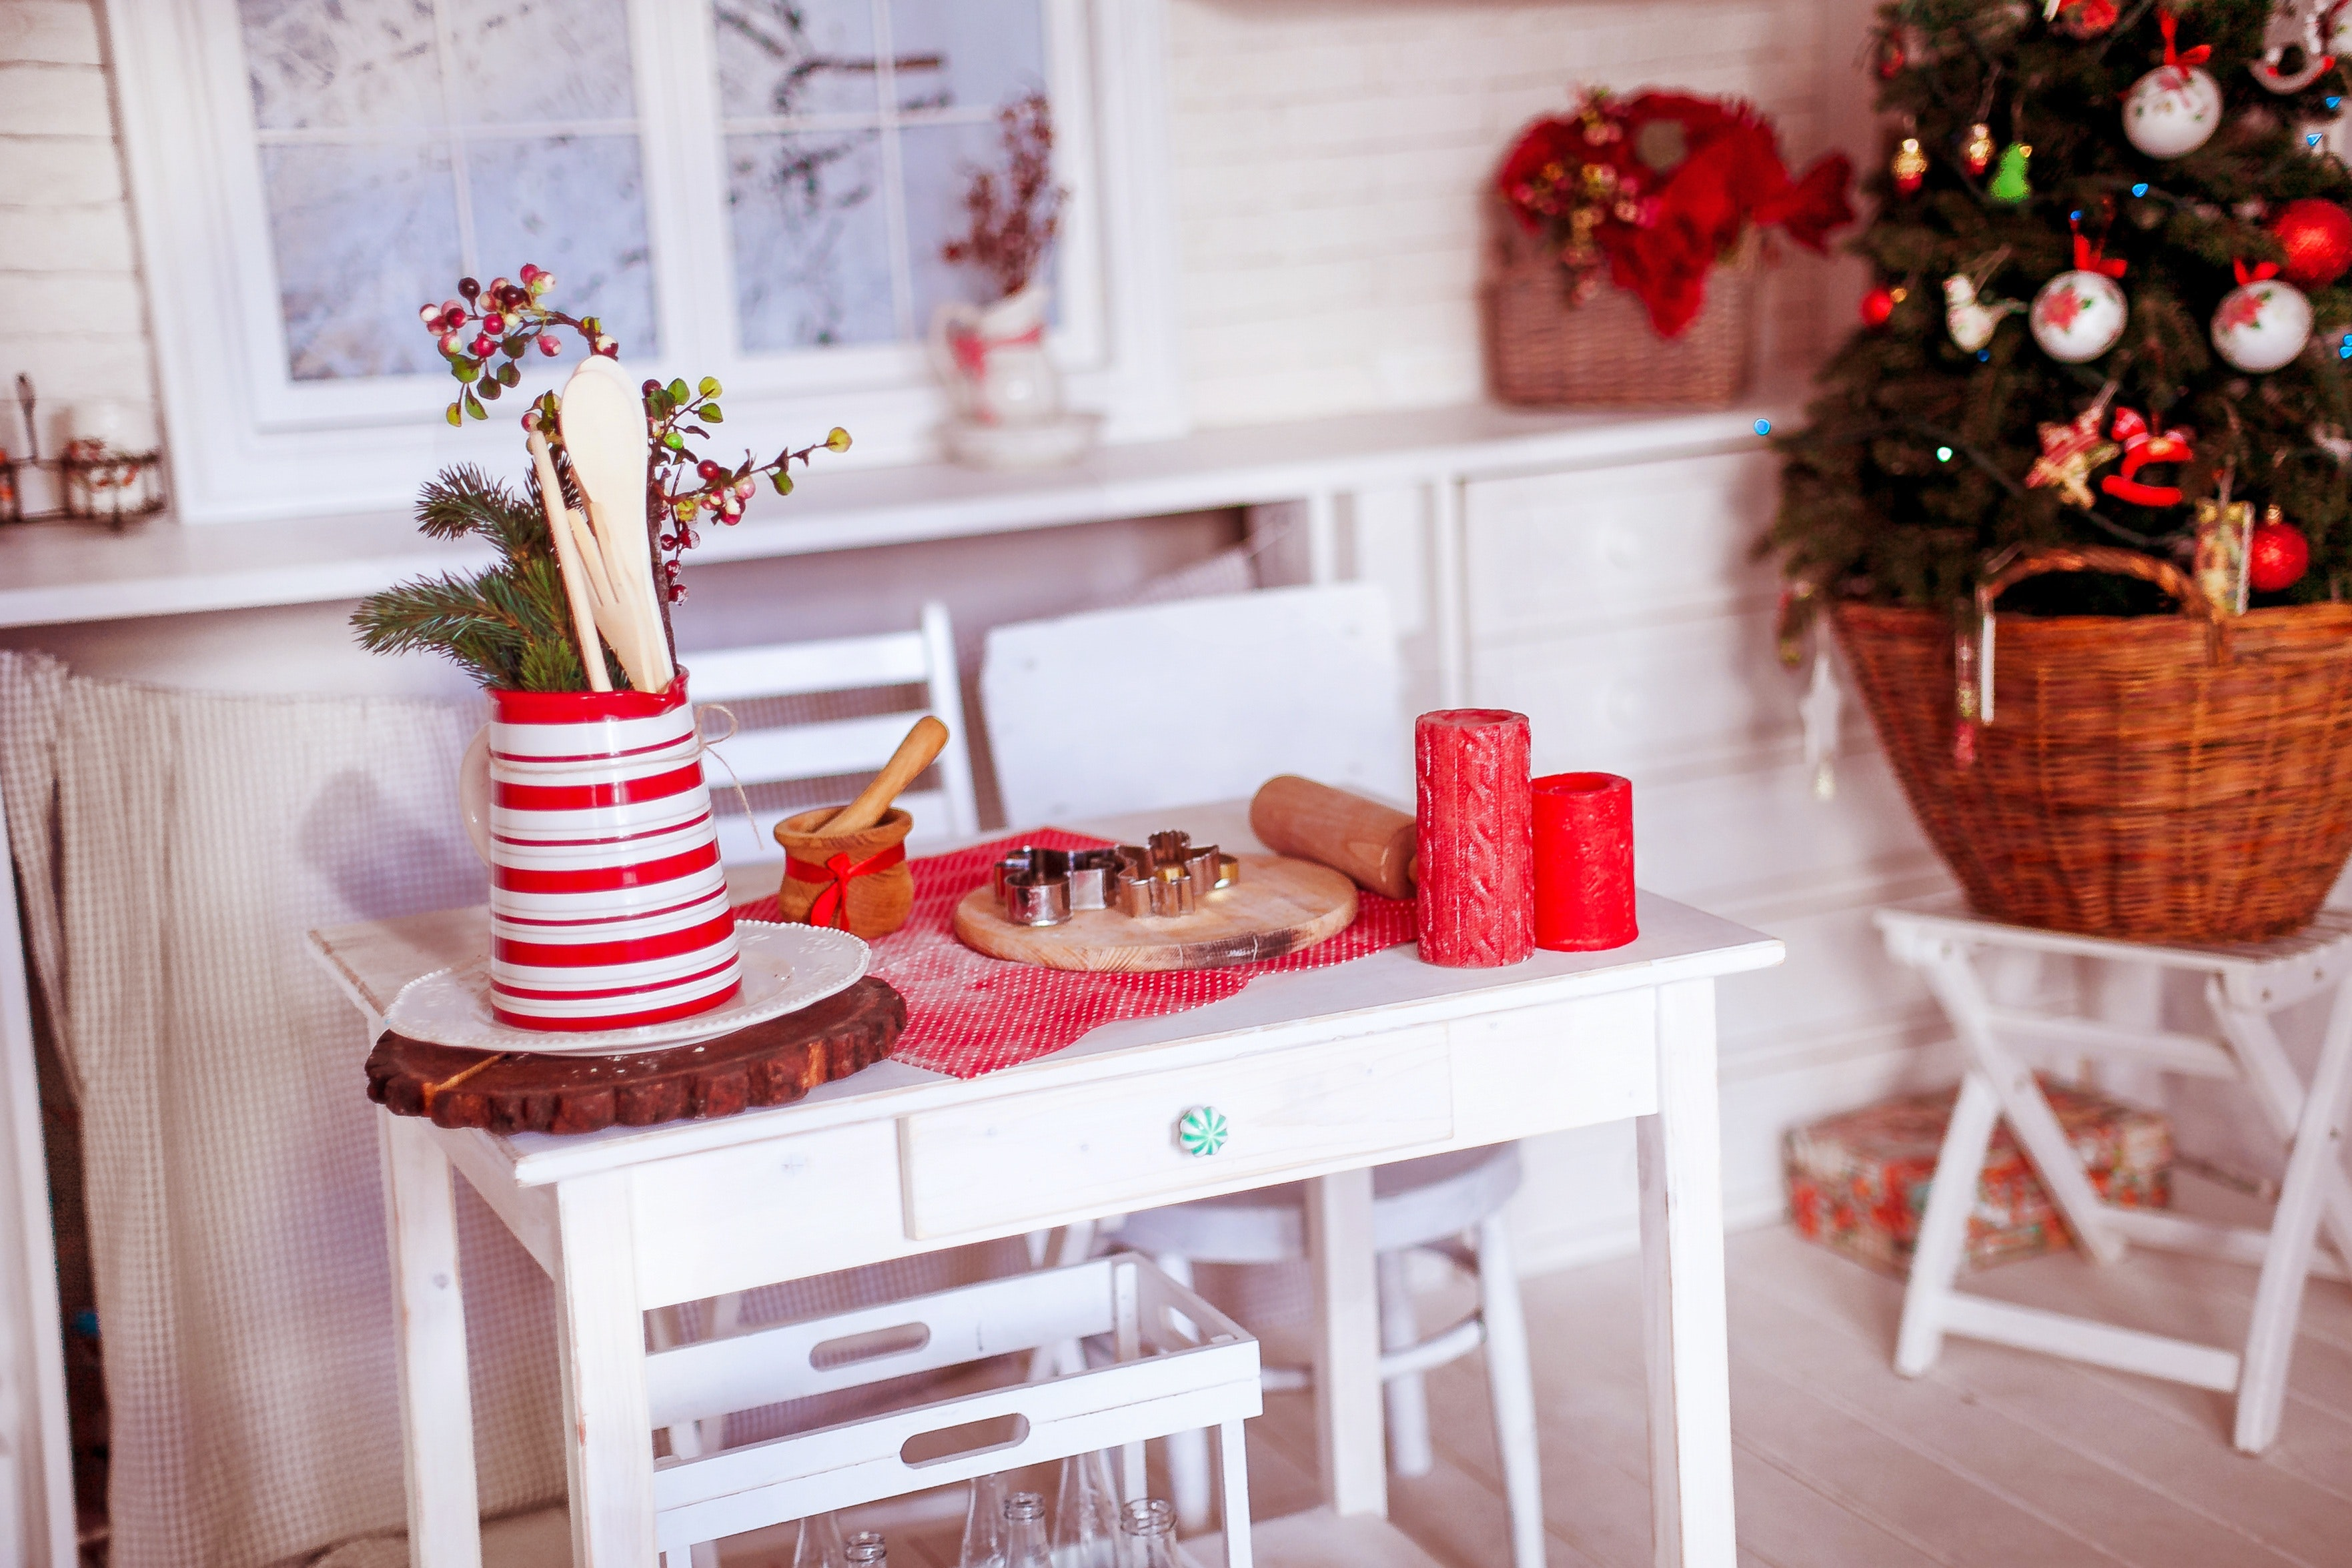 Christmas decorations on table photo